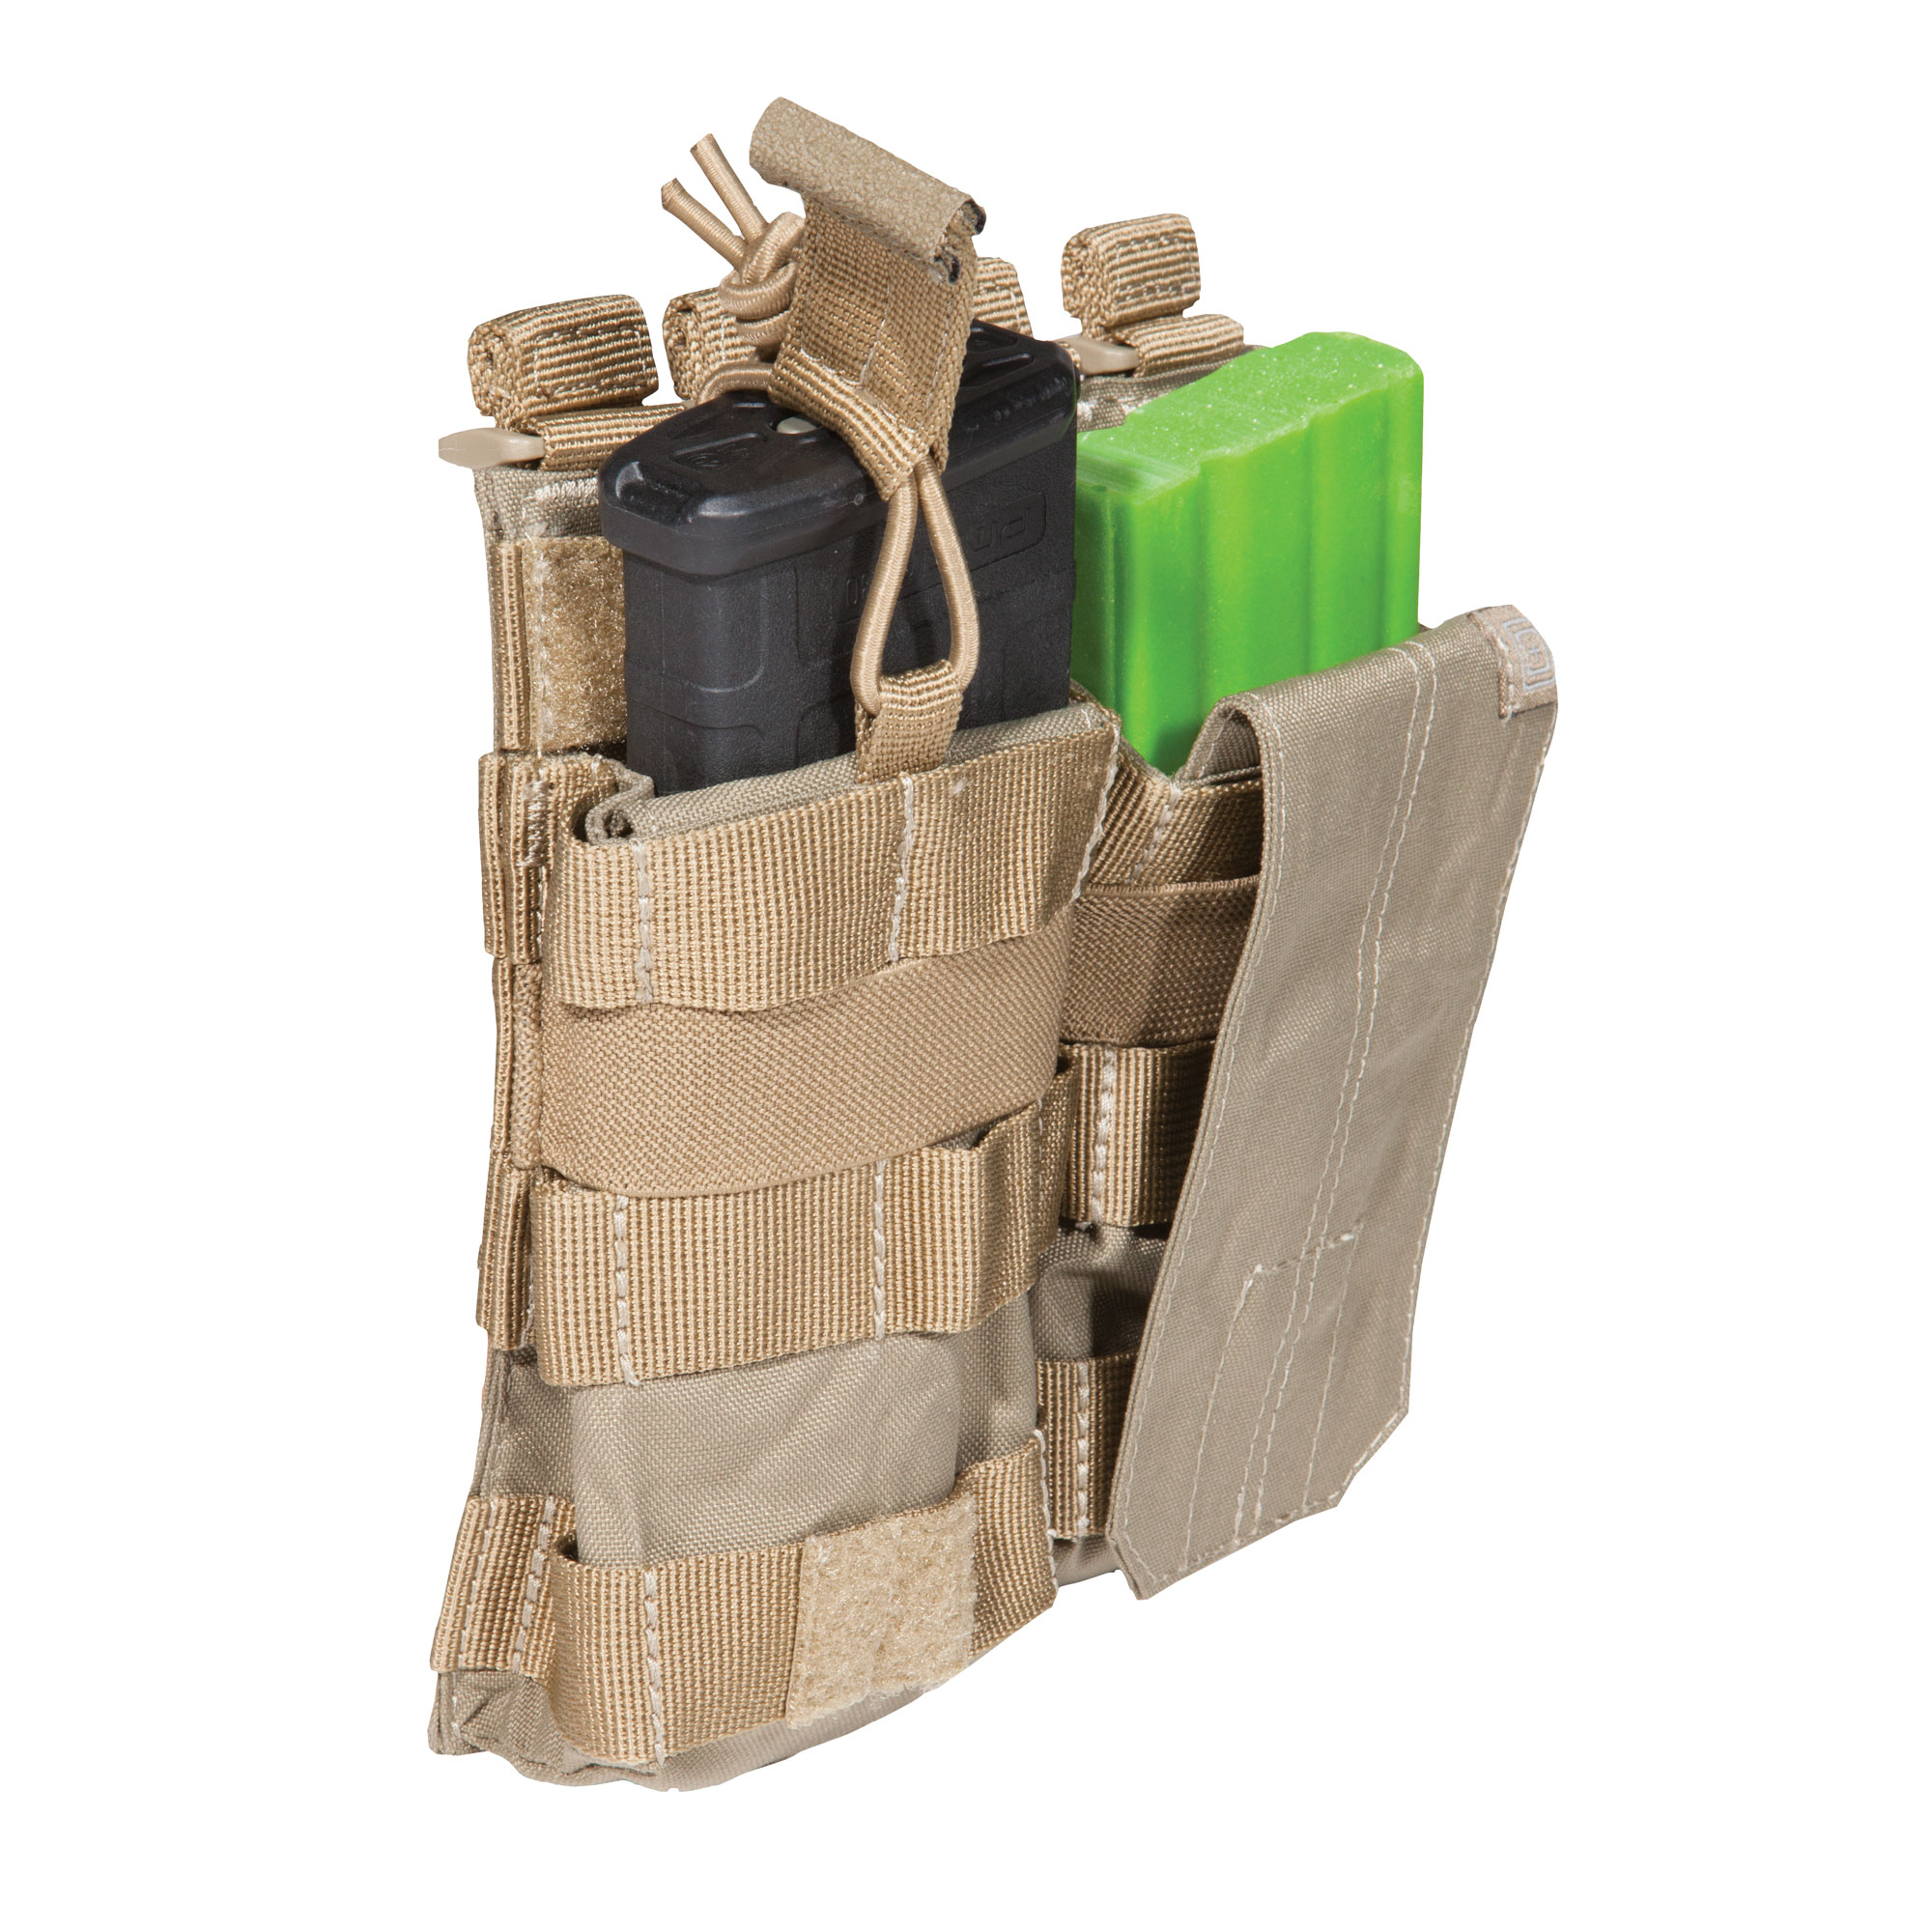 5.11 Tactical Double 5.56 Magazine Bungee Cover  � 56157 - All Colors